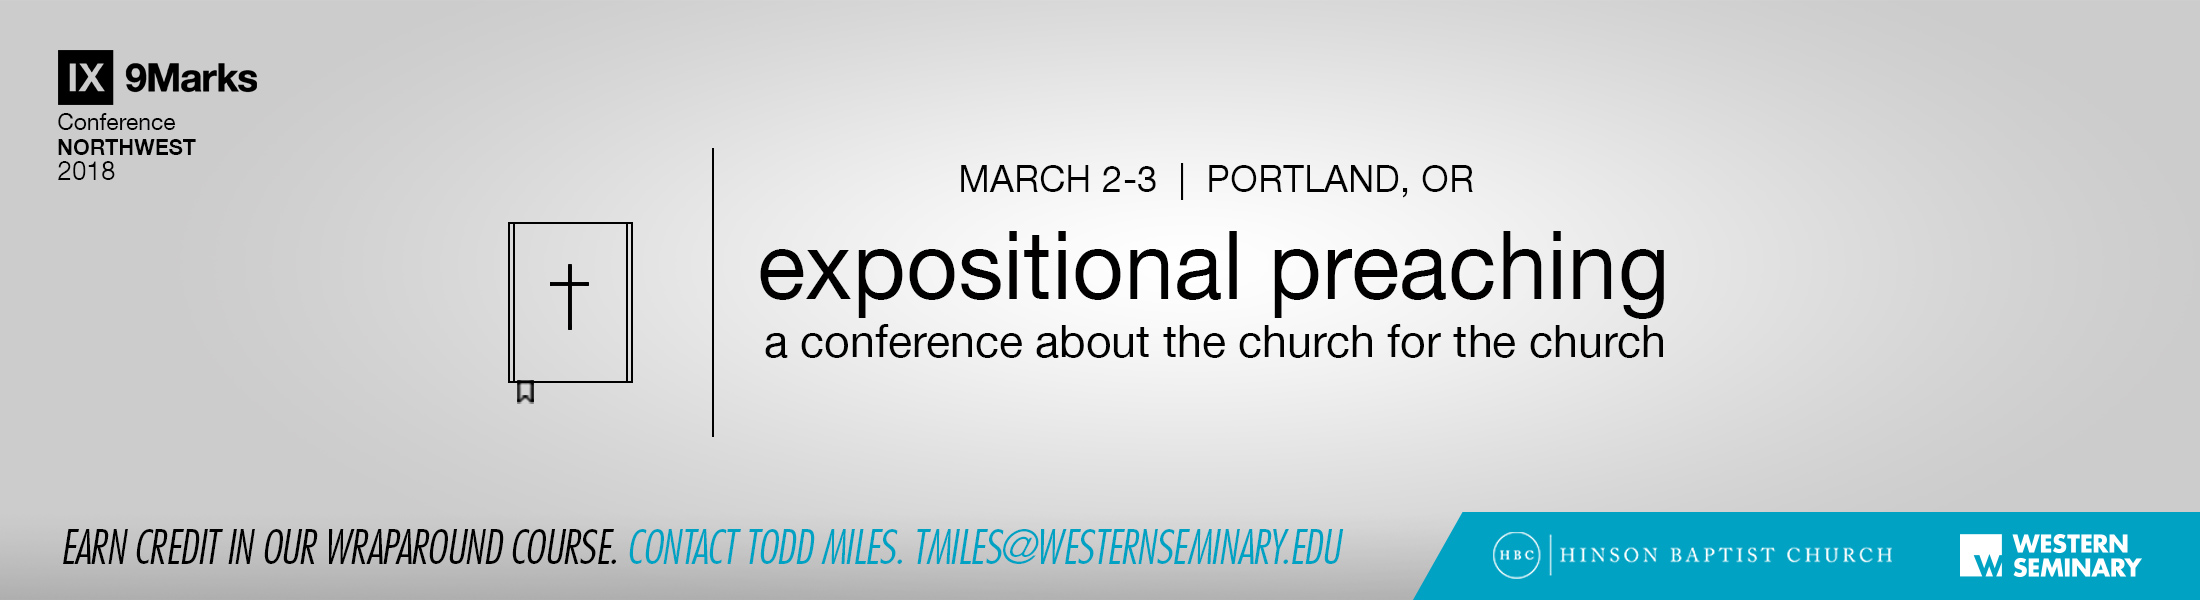 9Marks Conference: Expositional Preaching